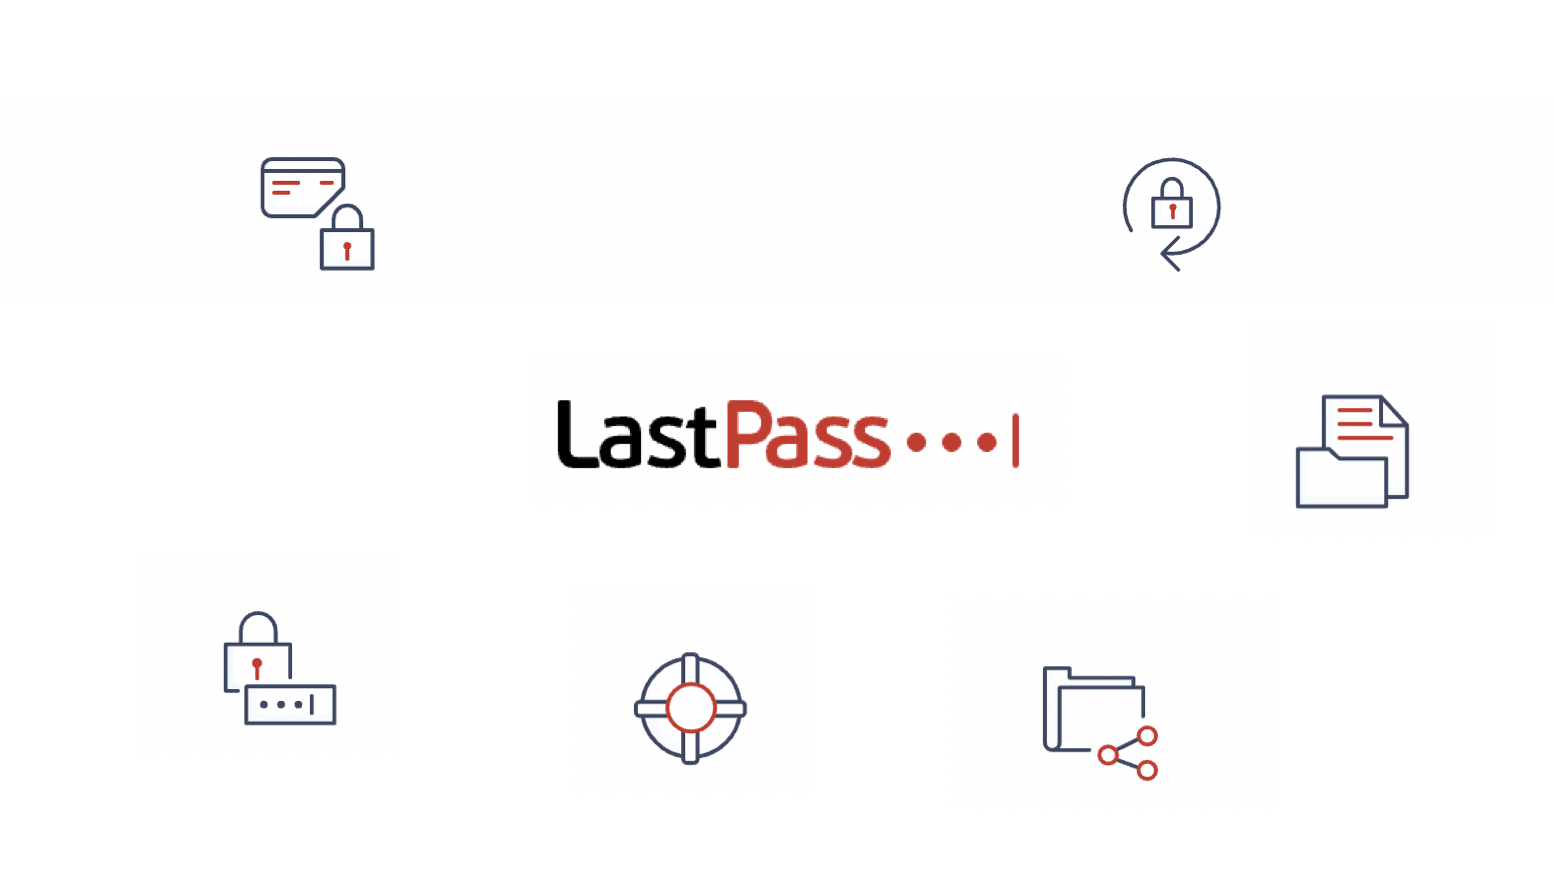 Meet LastPass, a service that lets you easily manage passwords from your phone or computer